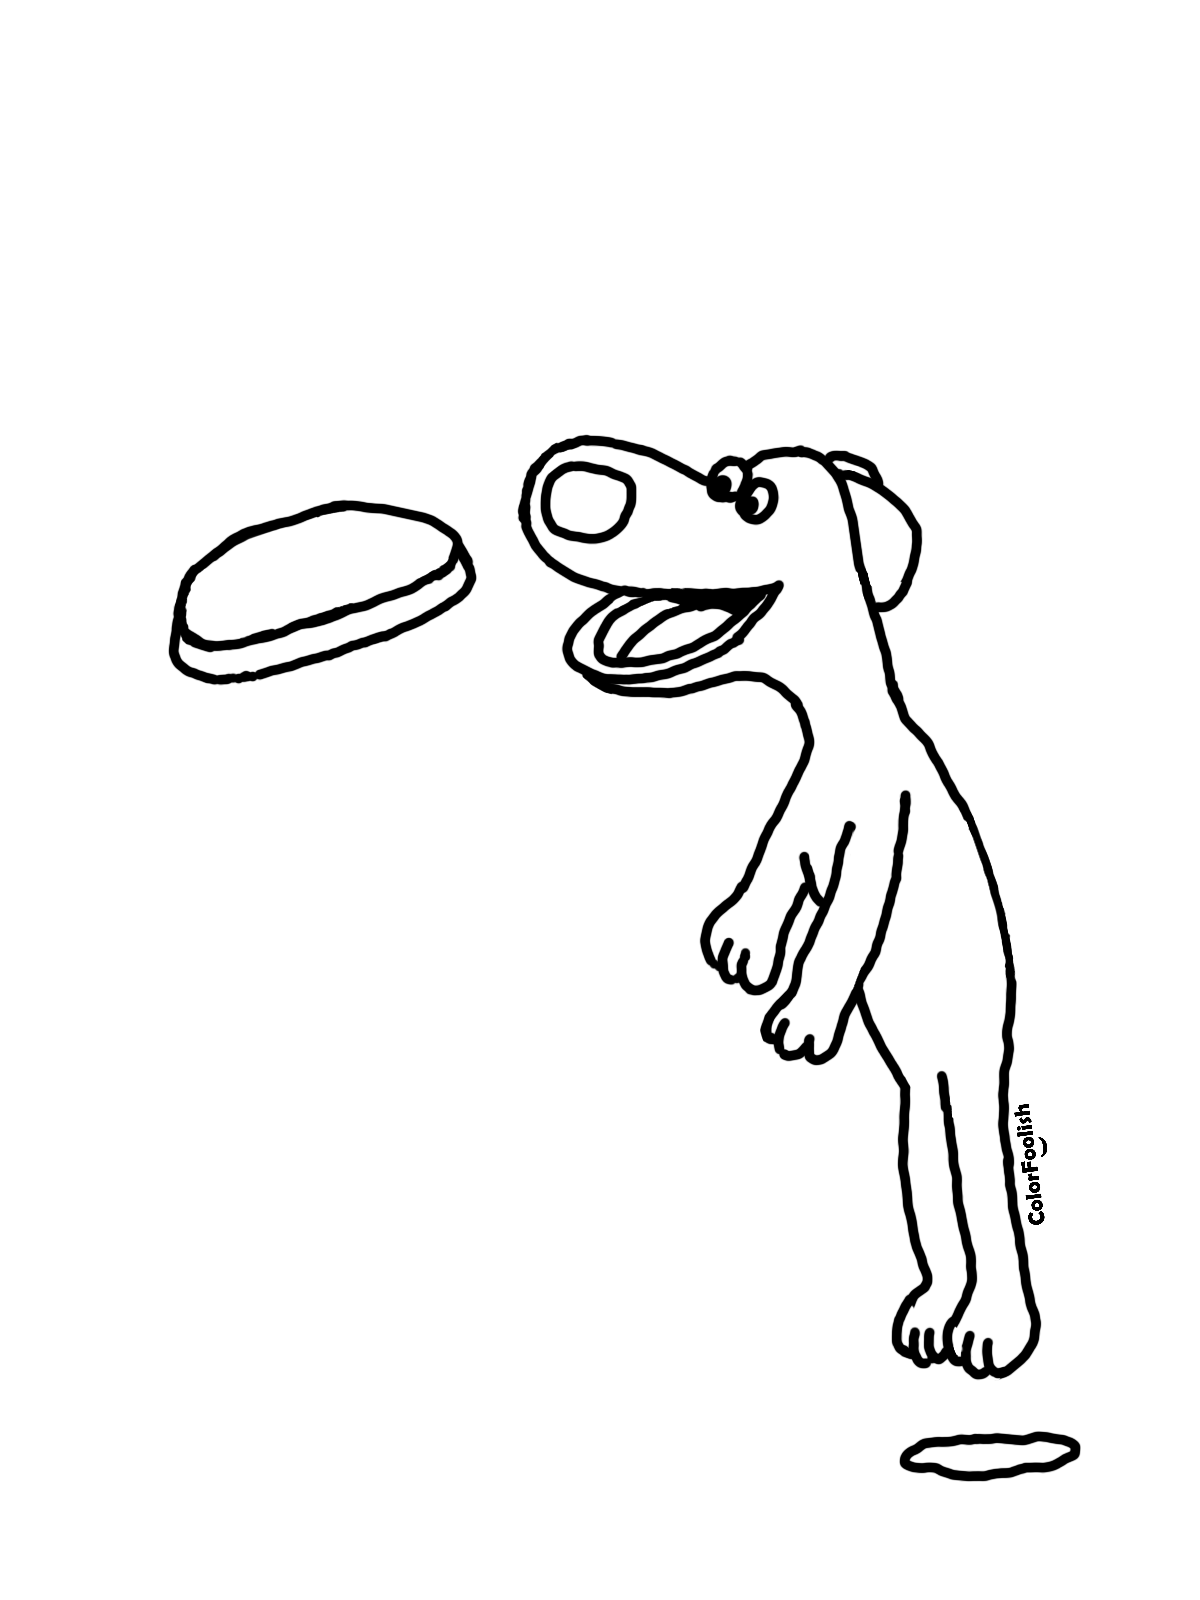 Coloring page of a jumping dog catching a frisbee